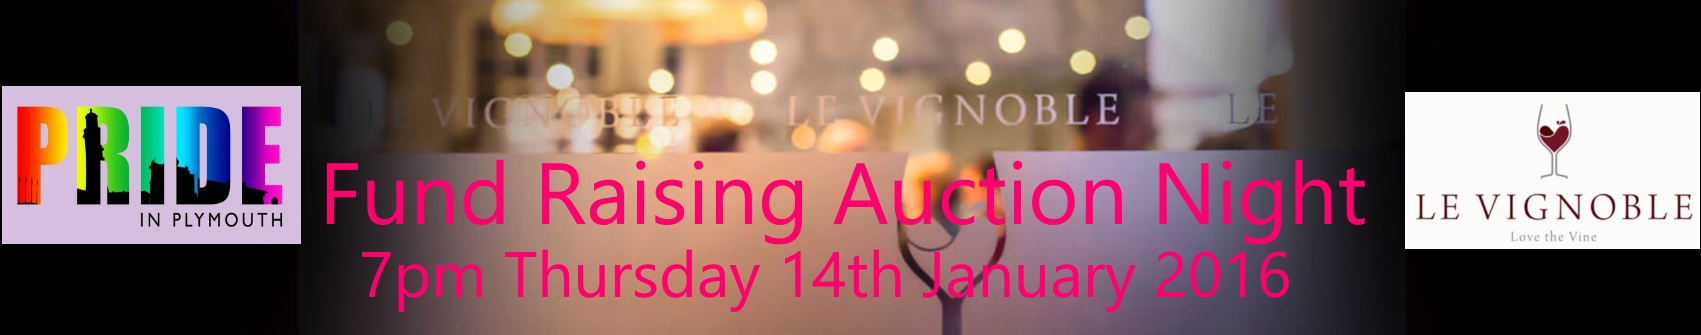 Pride Fund Raising Auction 2016